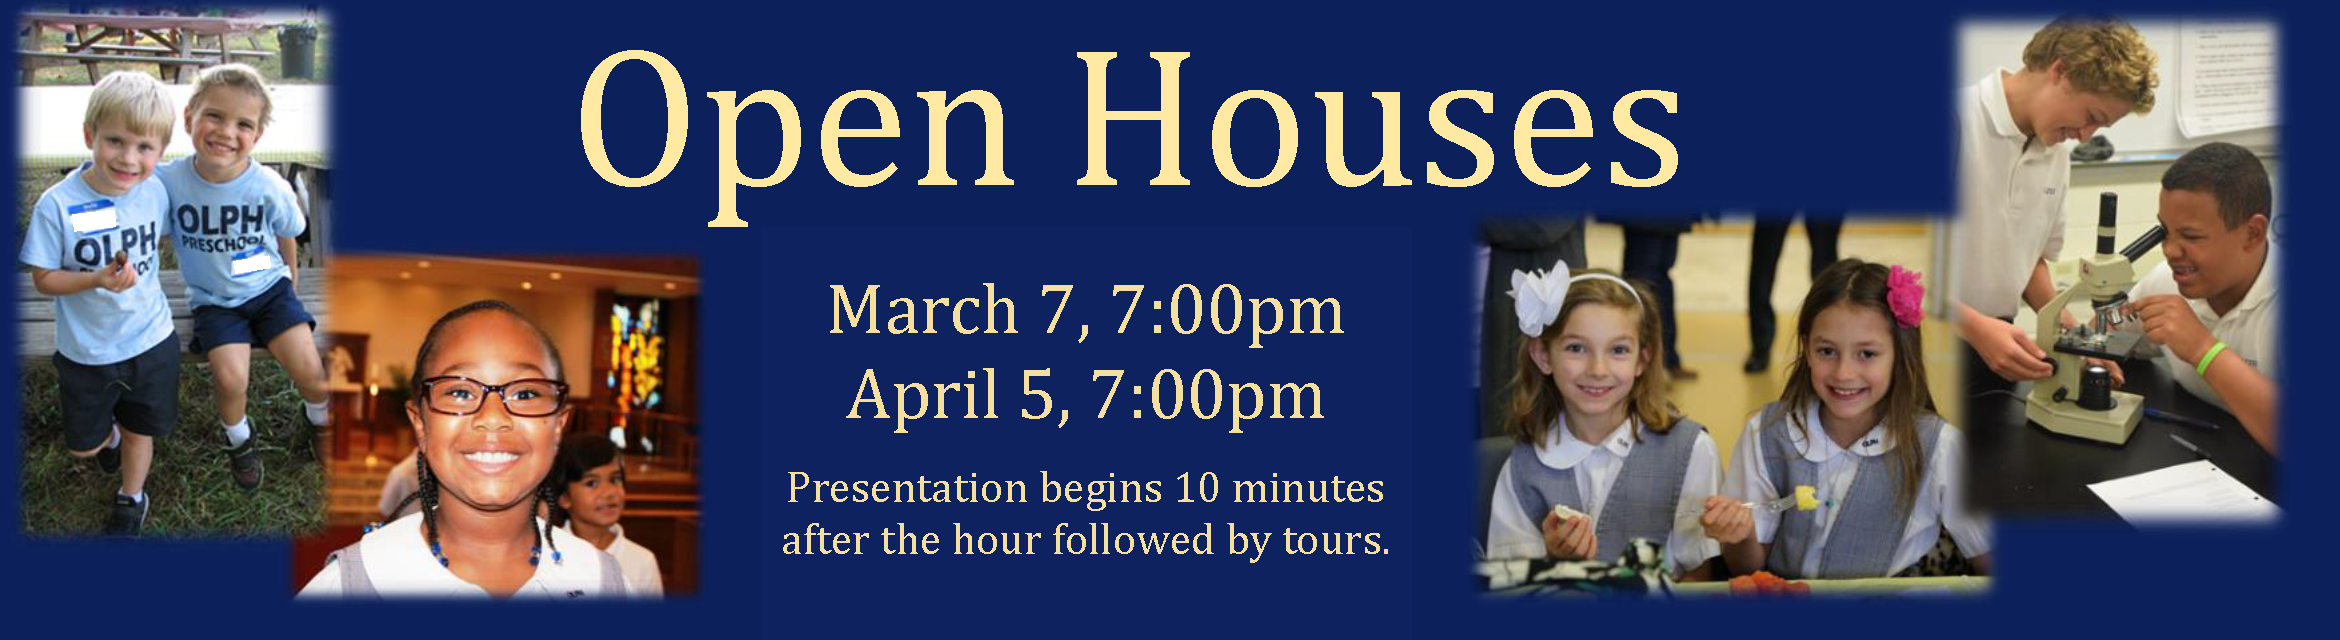 2017-March-April-open-house-slider-11.7-x-3.2